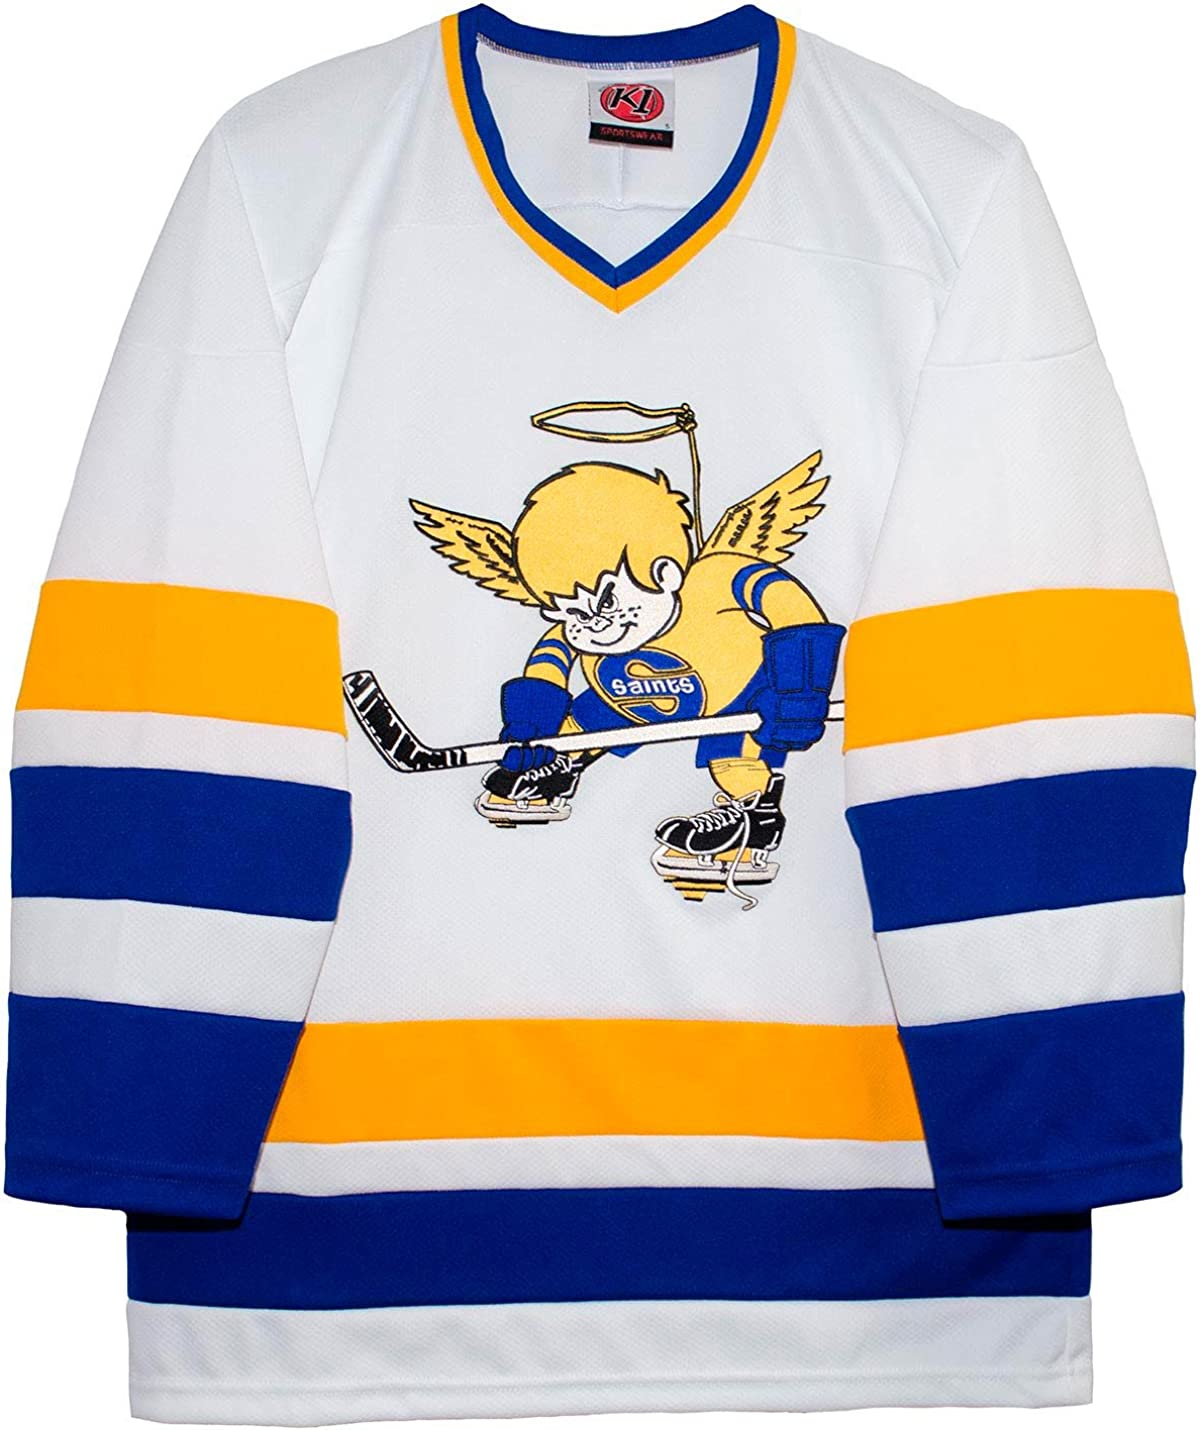 K-1 Sportswear Minnesota Fighting Saints Home White Vintage WHA Hockey Jersey